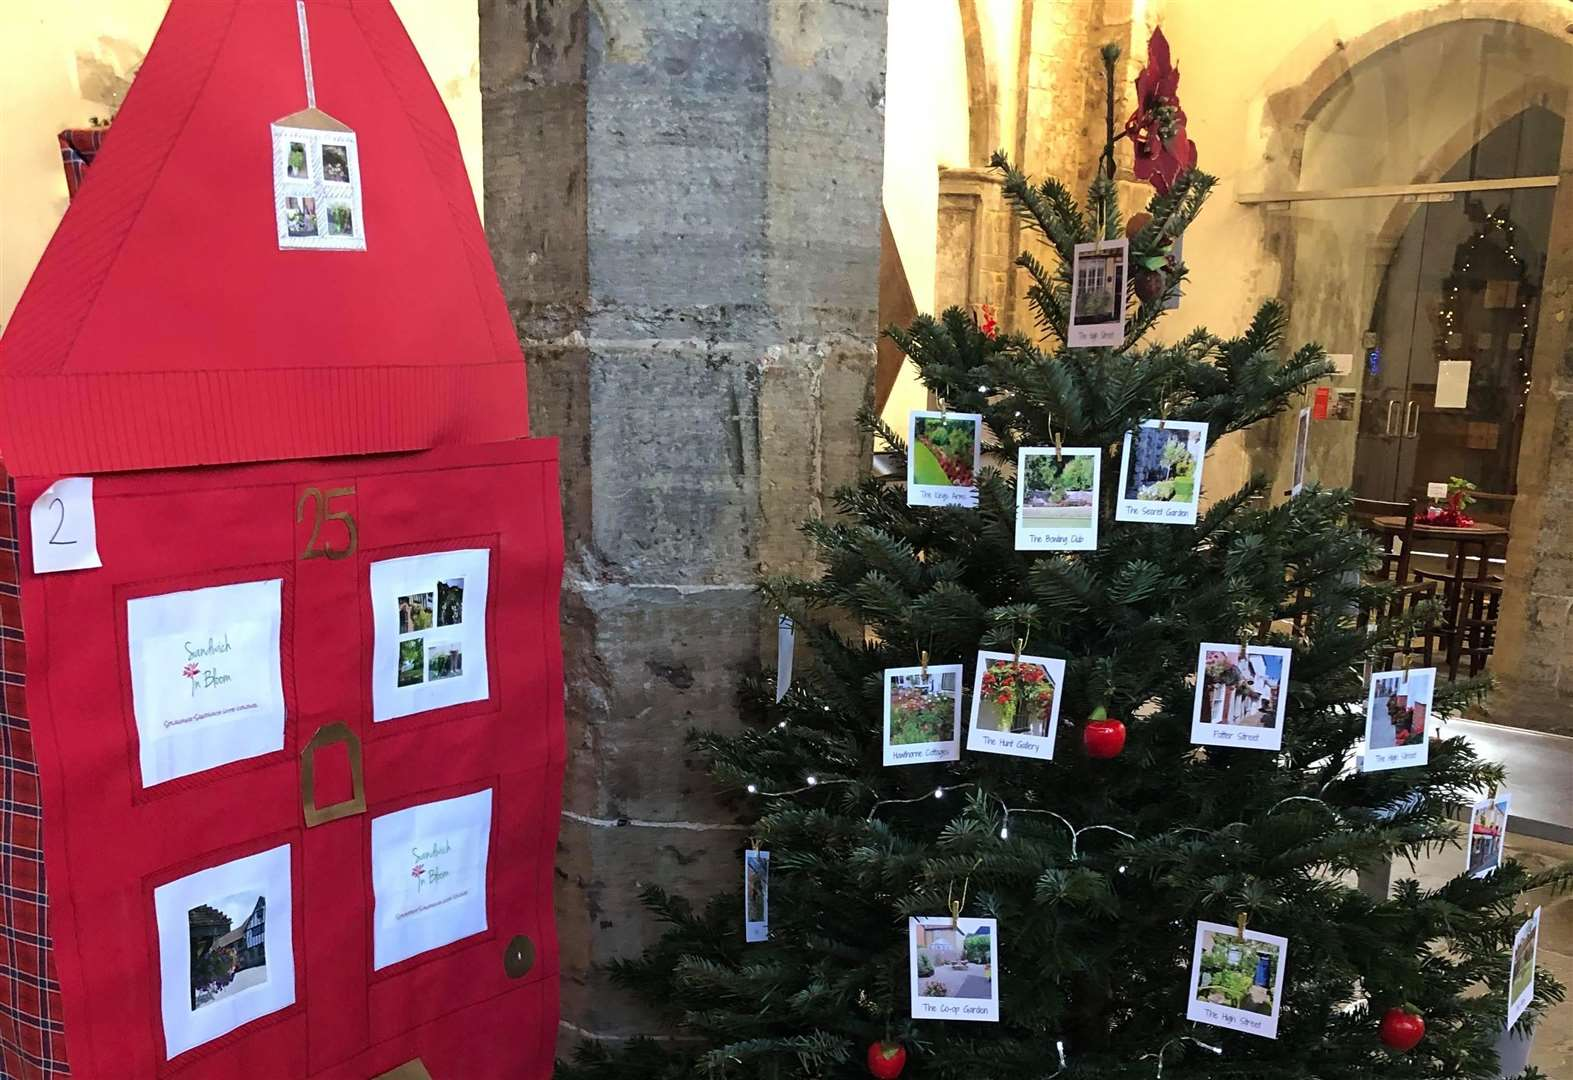 Church's Christmas trees need your vote